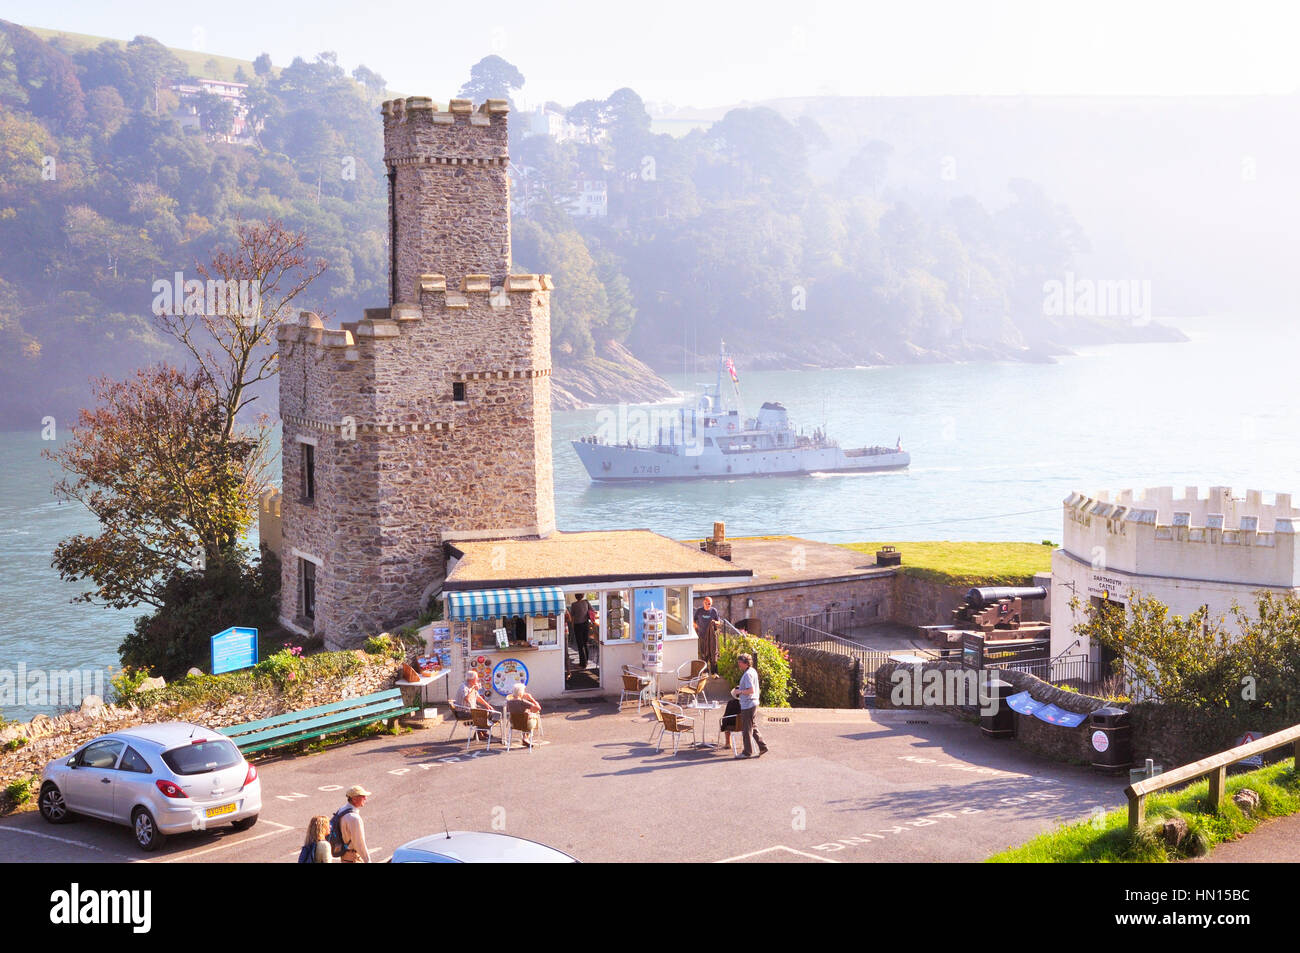 Dartmouth Castle and Tea Rooms with a passing naval ship on the River Dart estuary, South Hams, Devon, England, - Stock Image